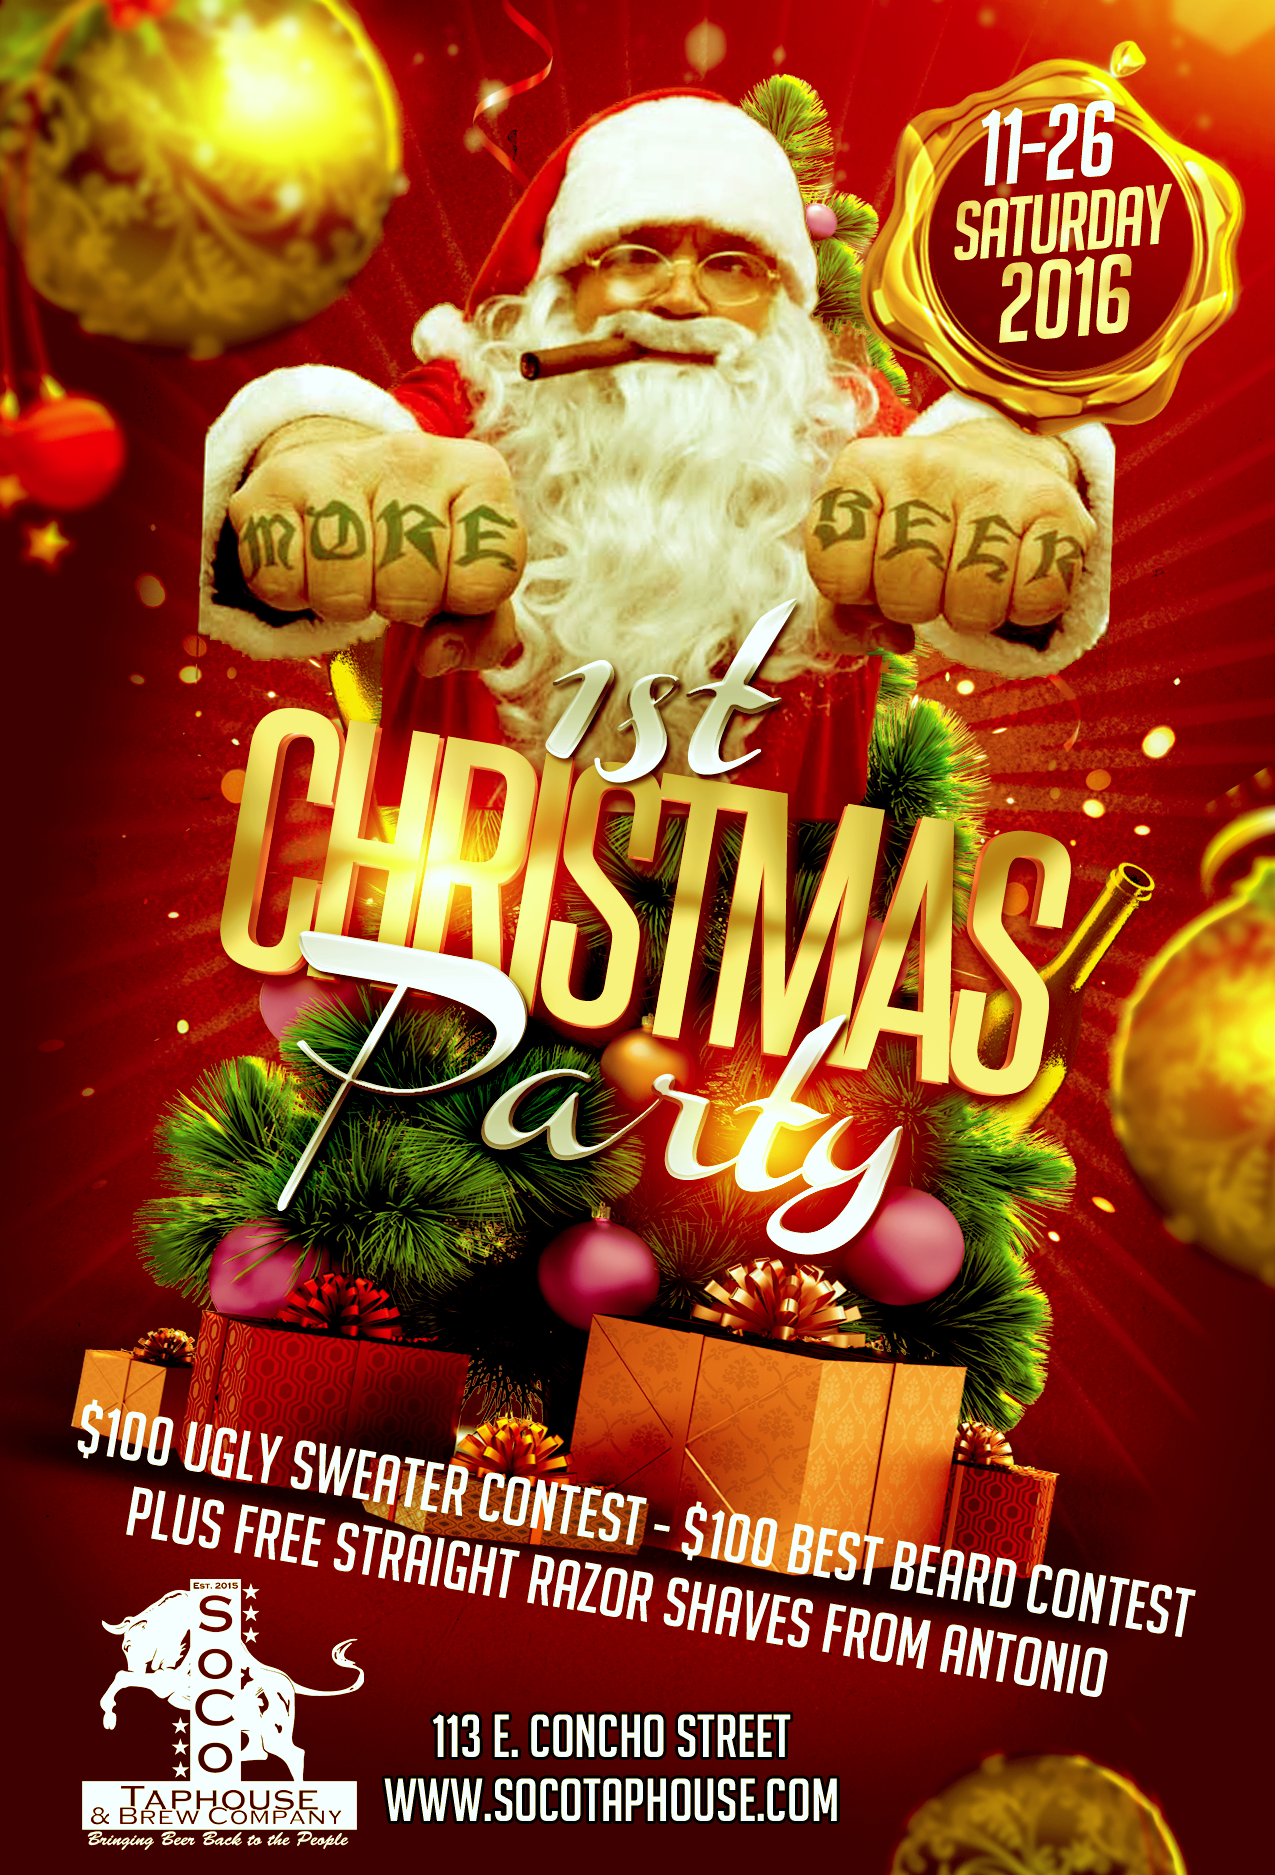 1St Christmas Party Flyer #Design For Soco Taphouse & Brewery